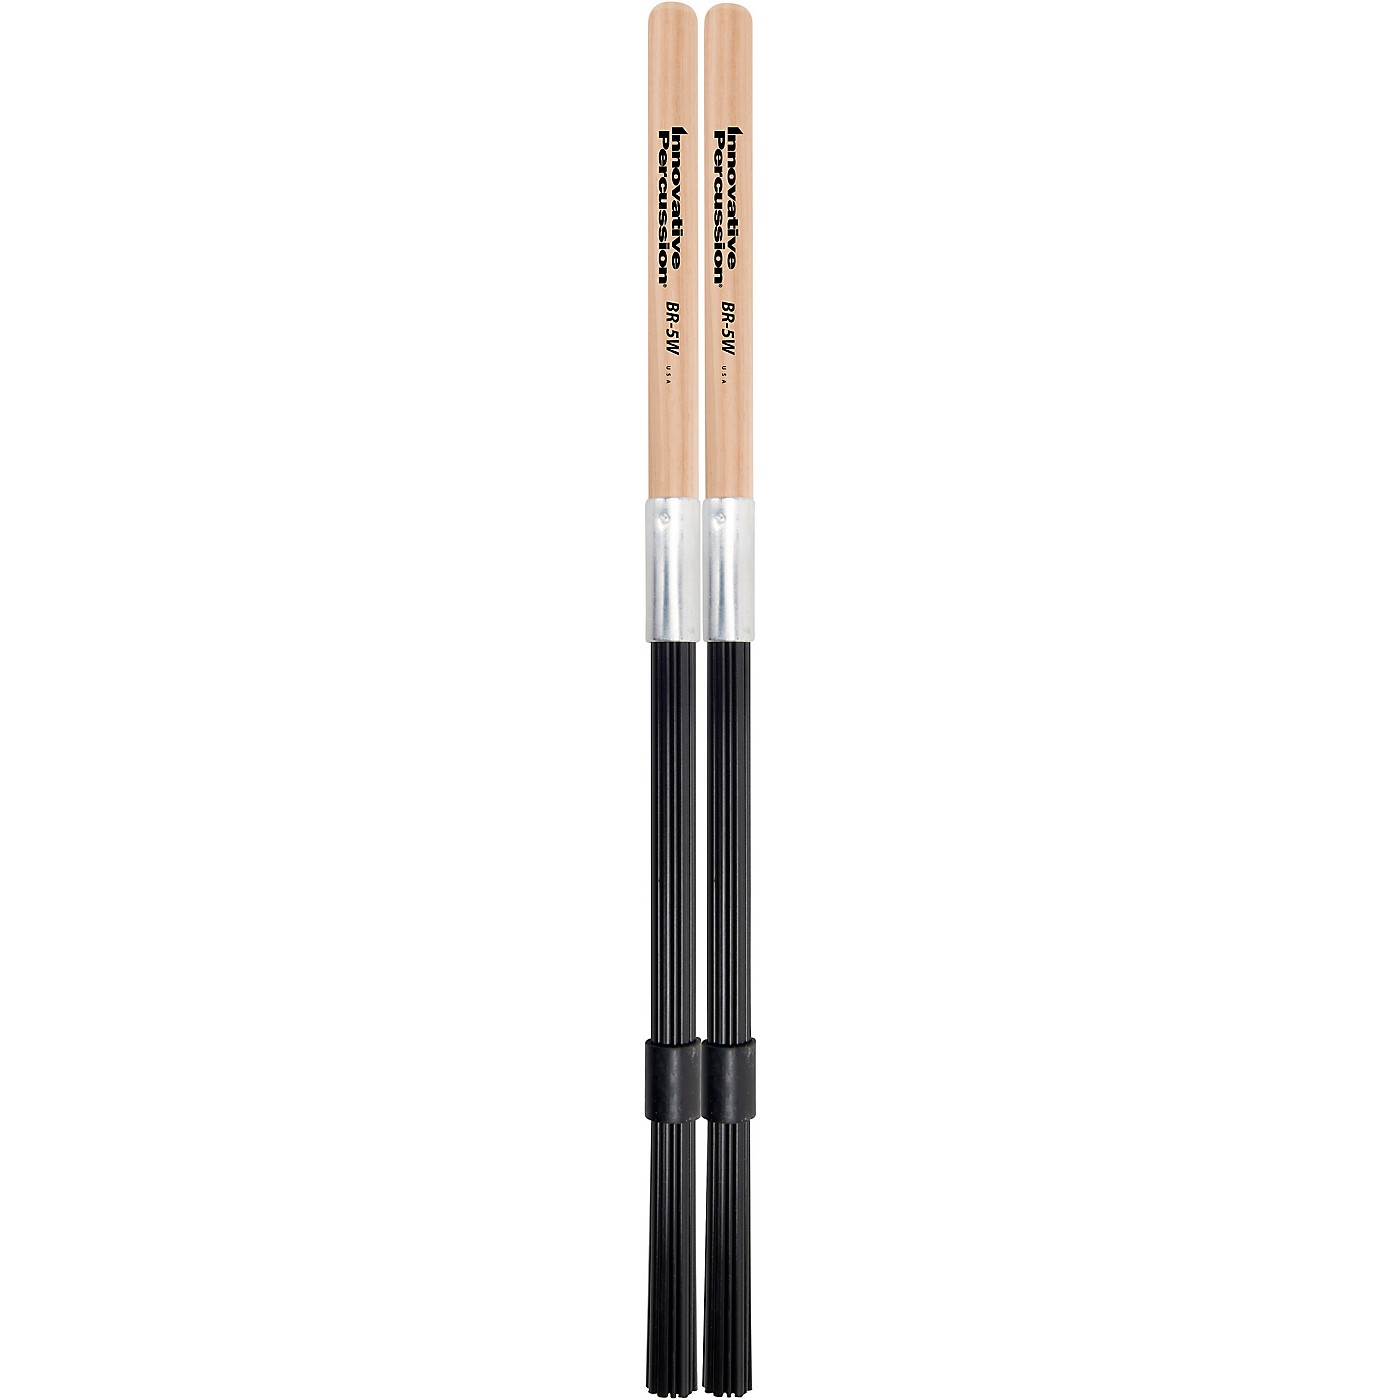 Innovative Percussion Synthetic Bundle Rods with Wood Handle thumbnail